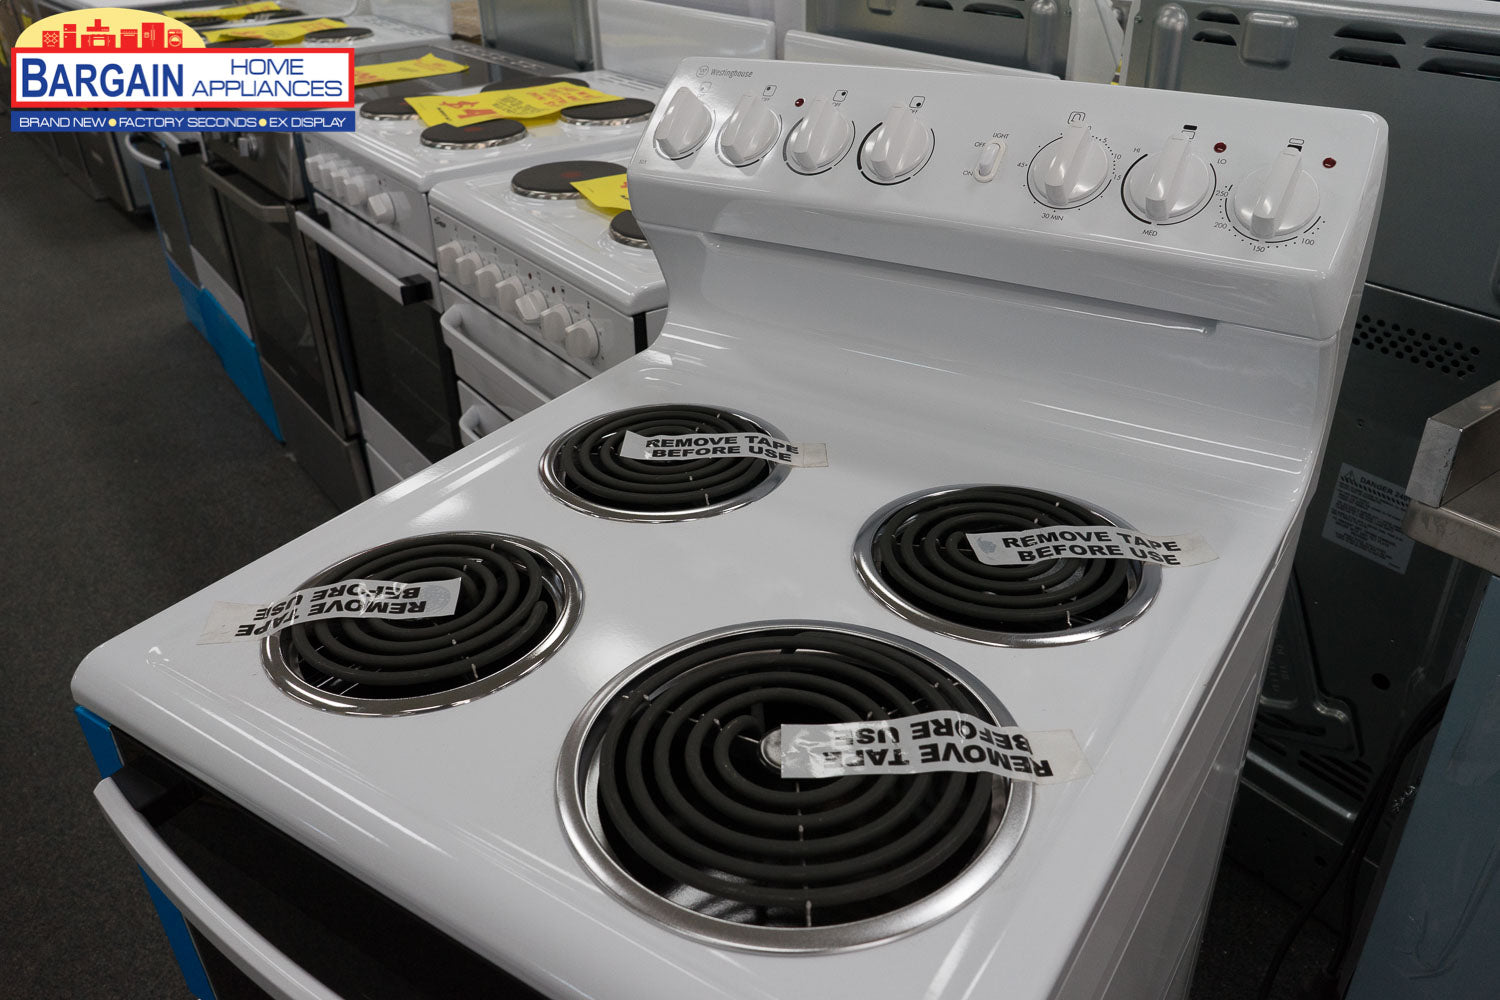 Westinghouse Wle525wa 54cm Freestanding Electric Cooker